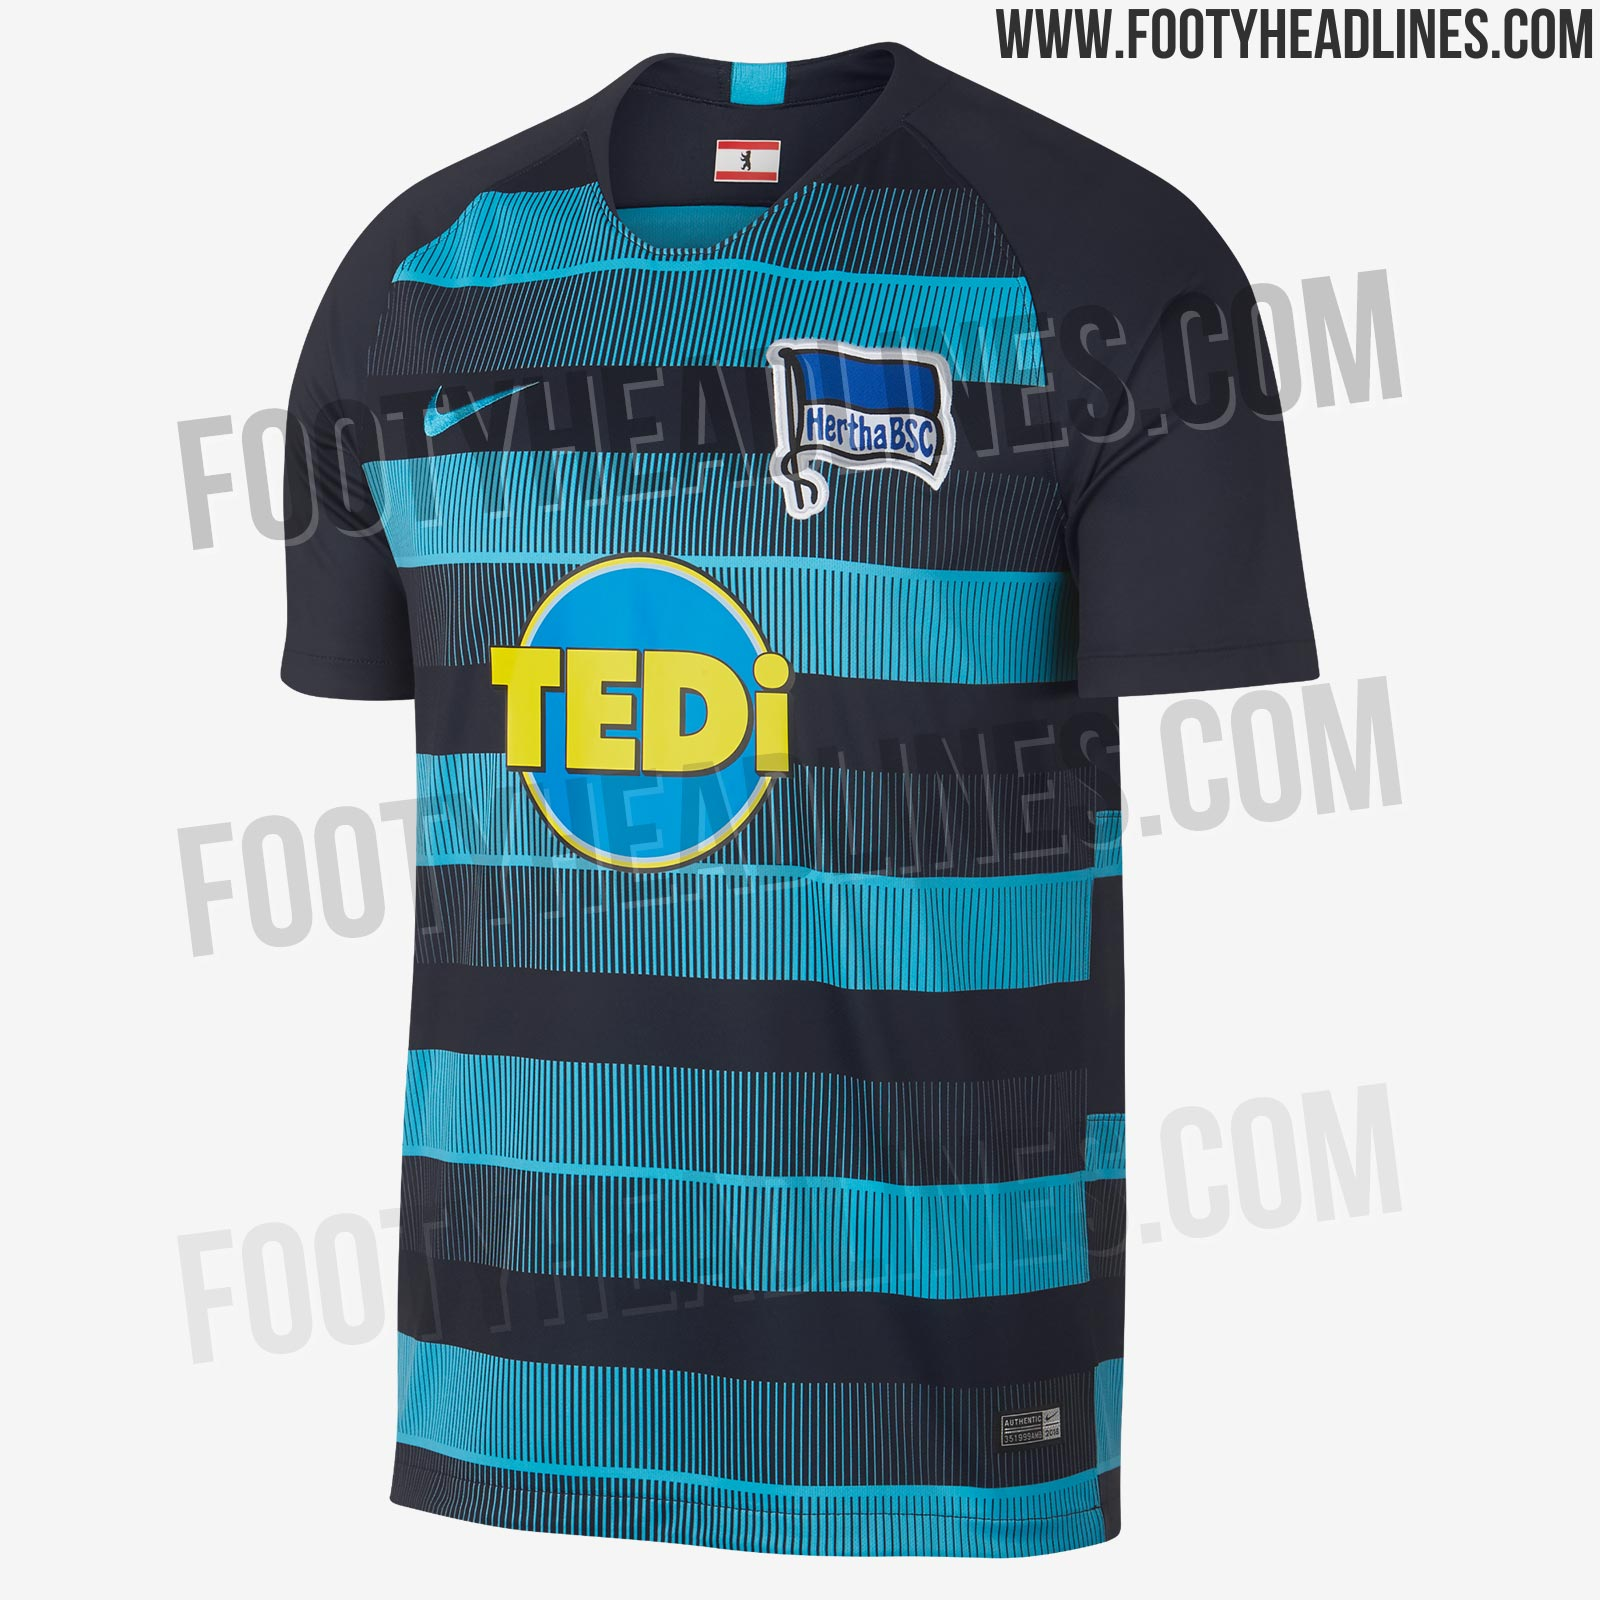 nike-hertha-berlin-18-19-home-away-kits-